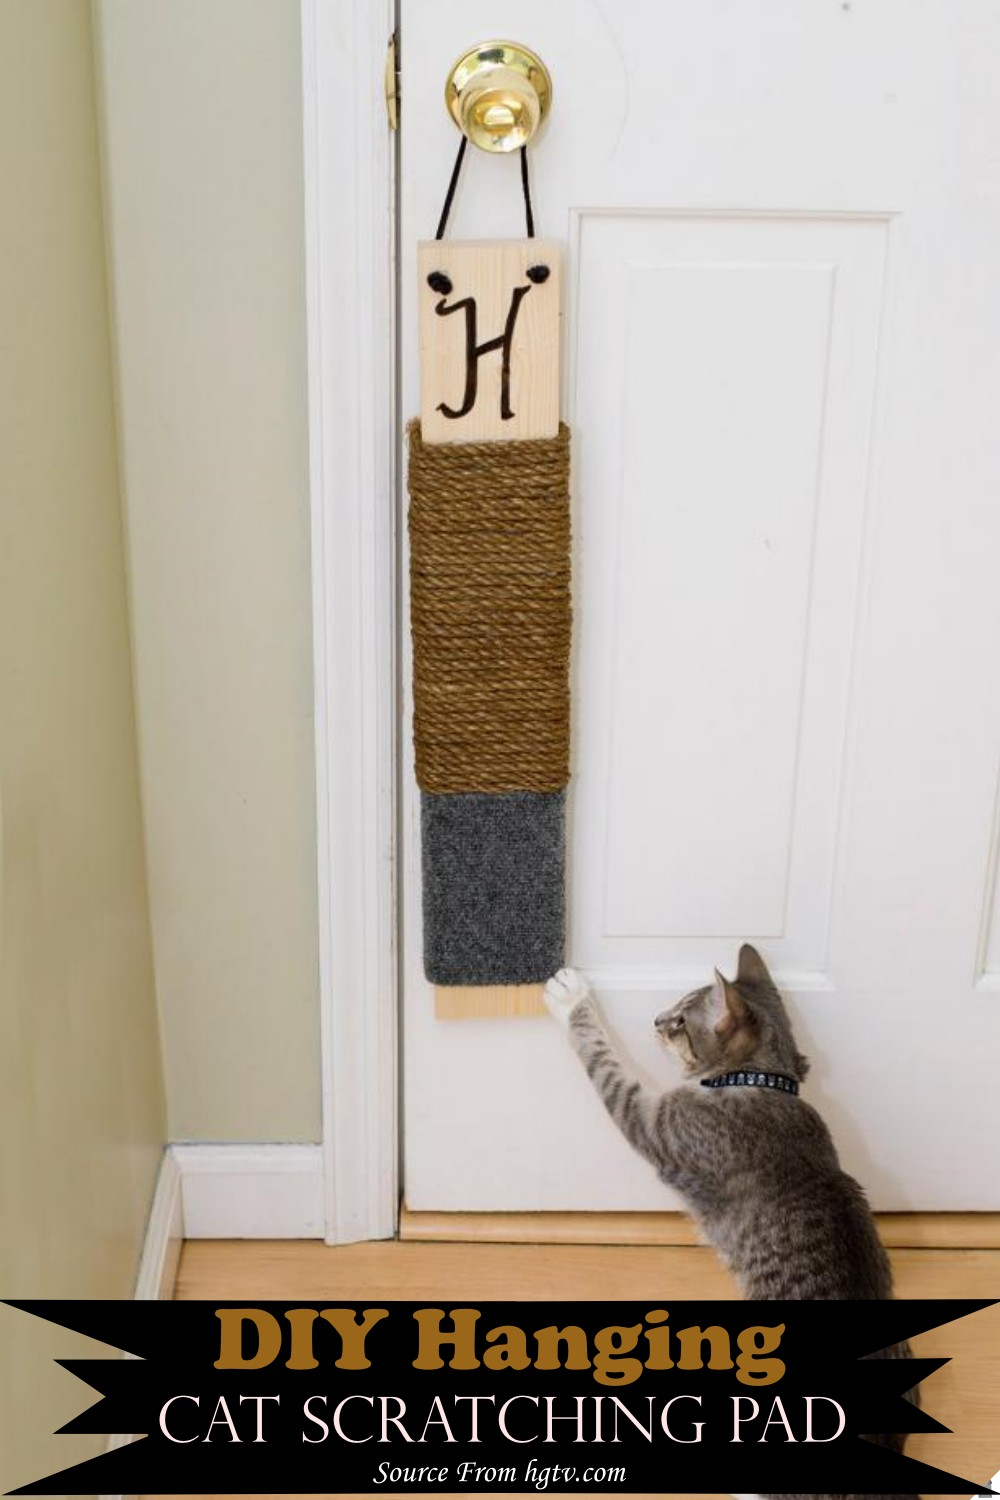 Hanging Pad for your feline friend